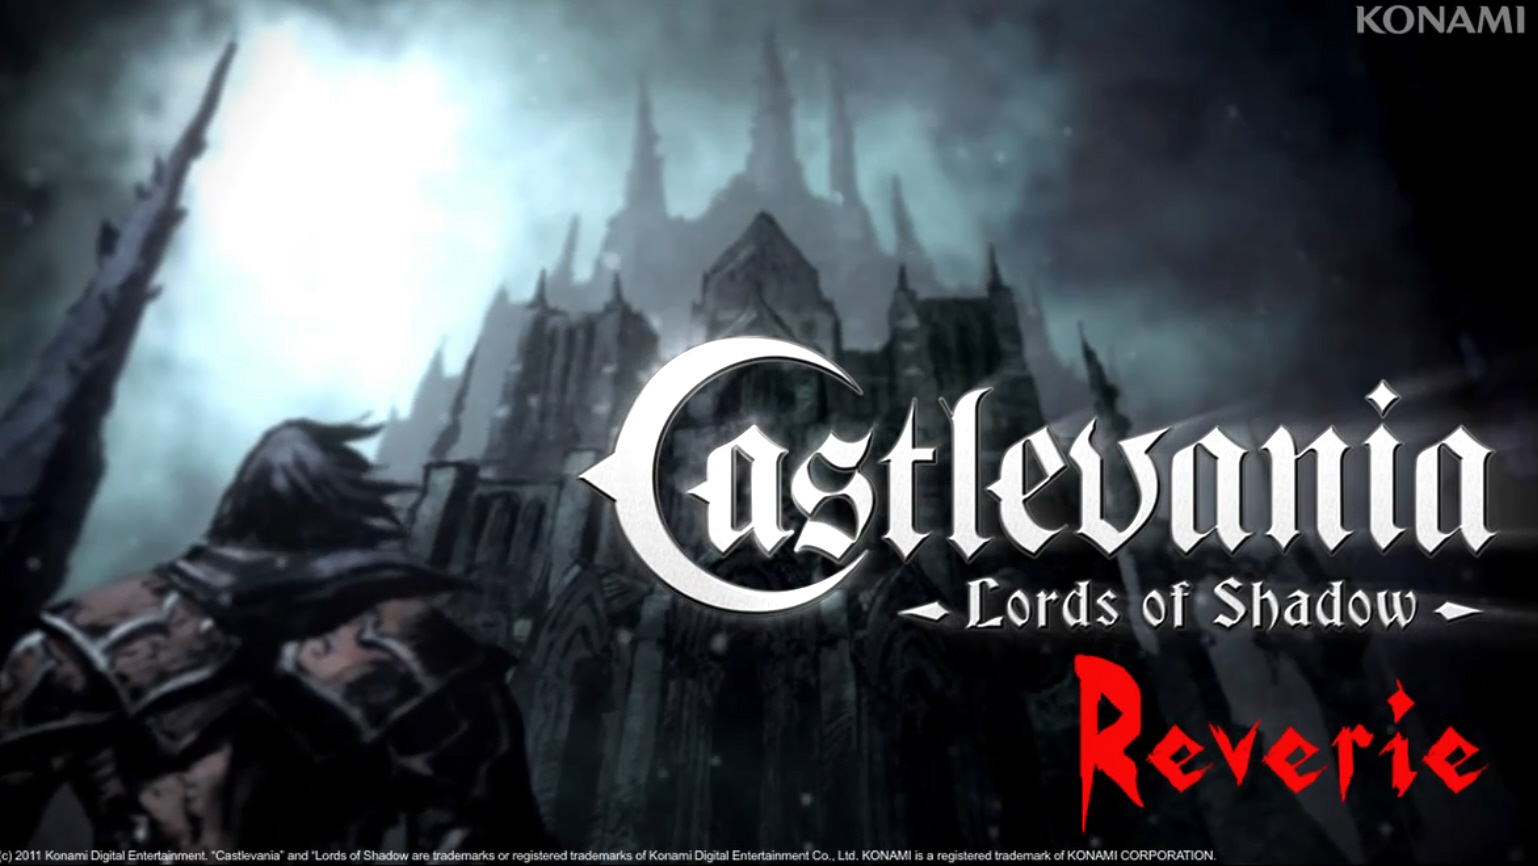 Review: Castlevania: Lords of Shadow 'Reverie', a new beginning